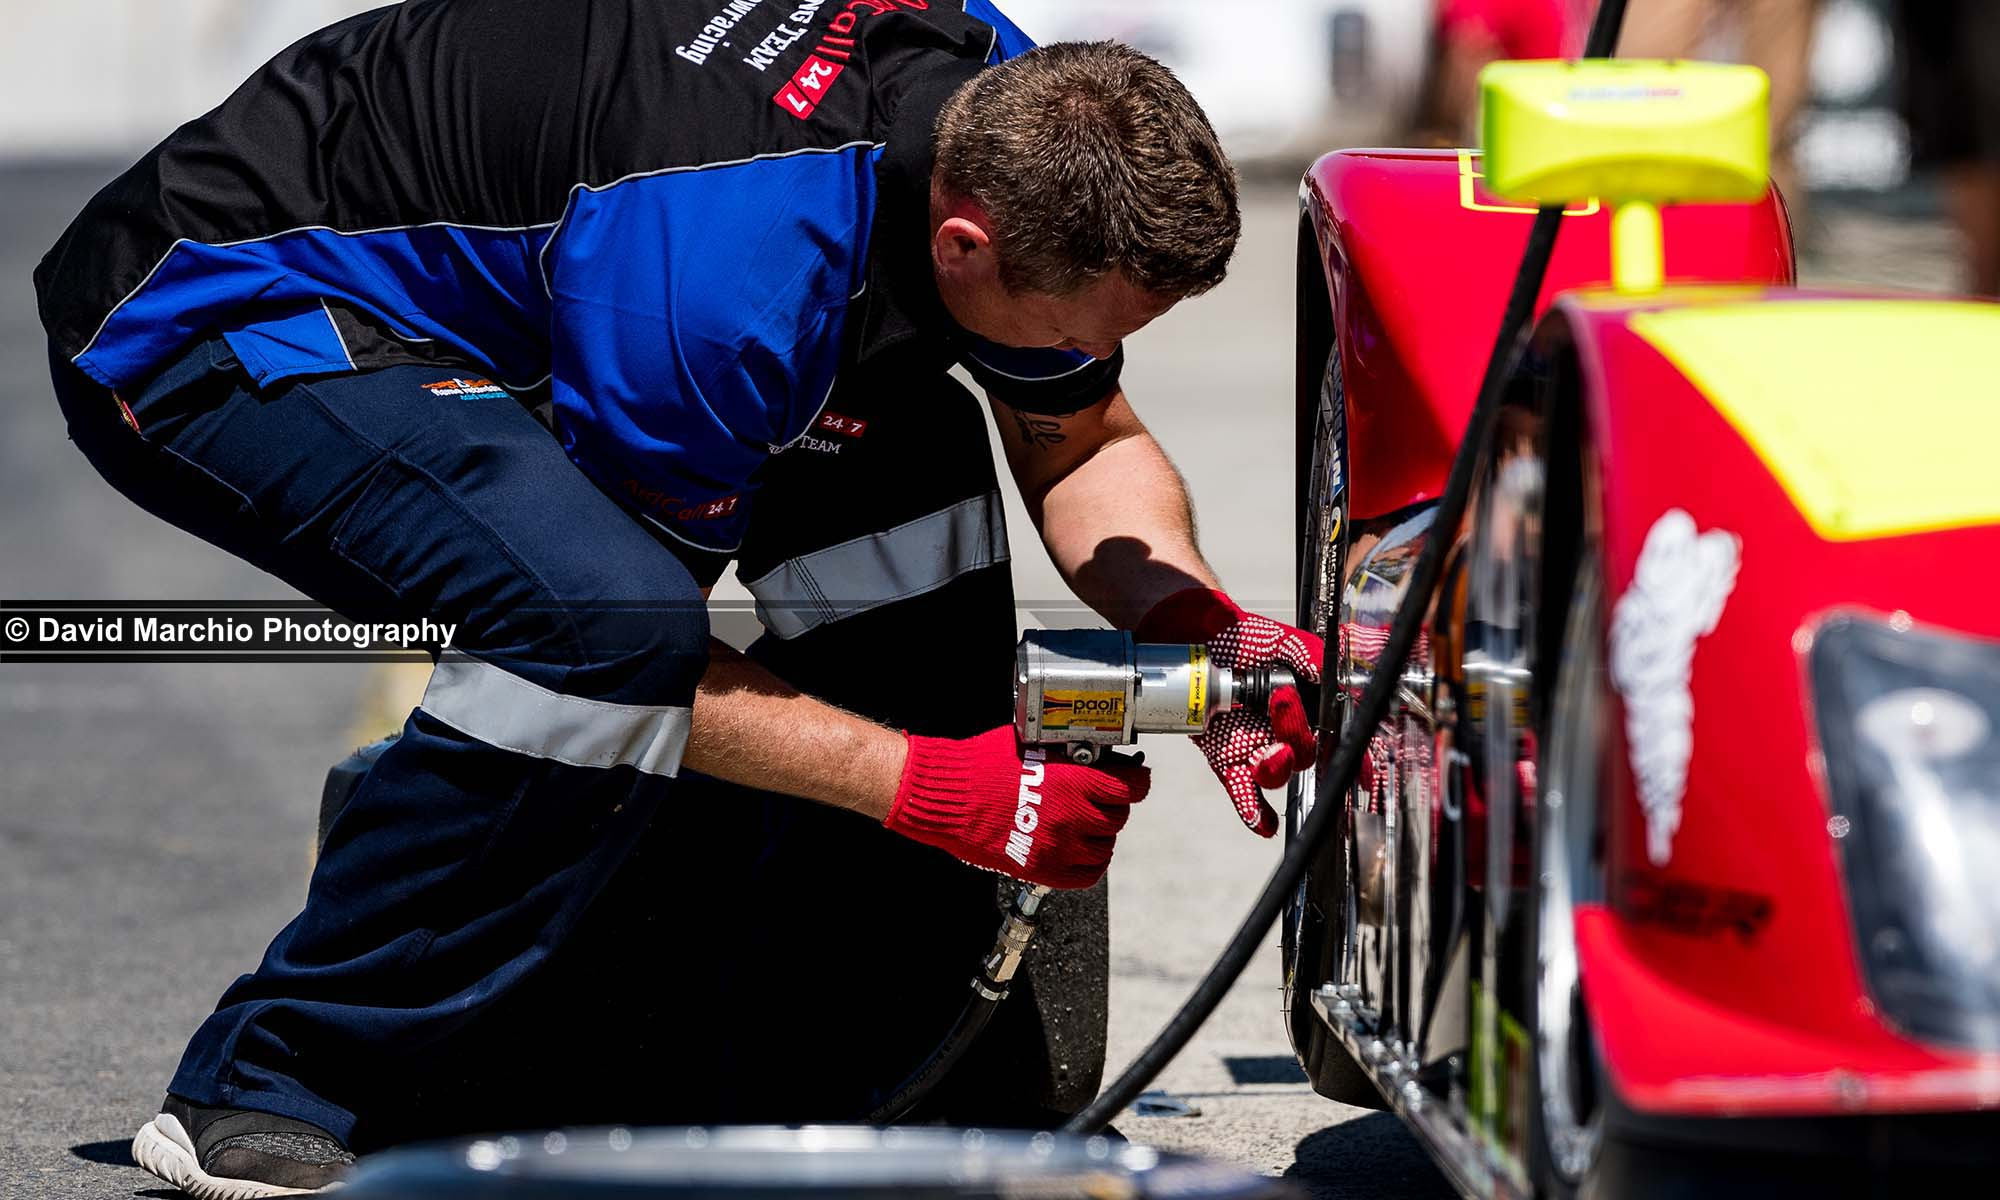 Pit crews worked tirelessly to ensure all cars were ready for the Campos 600 endurance showdown